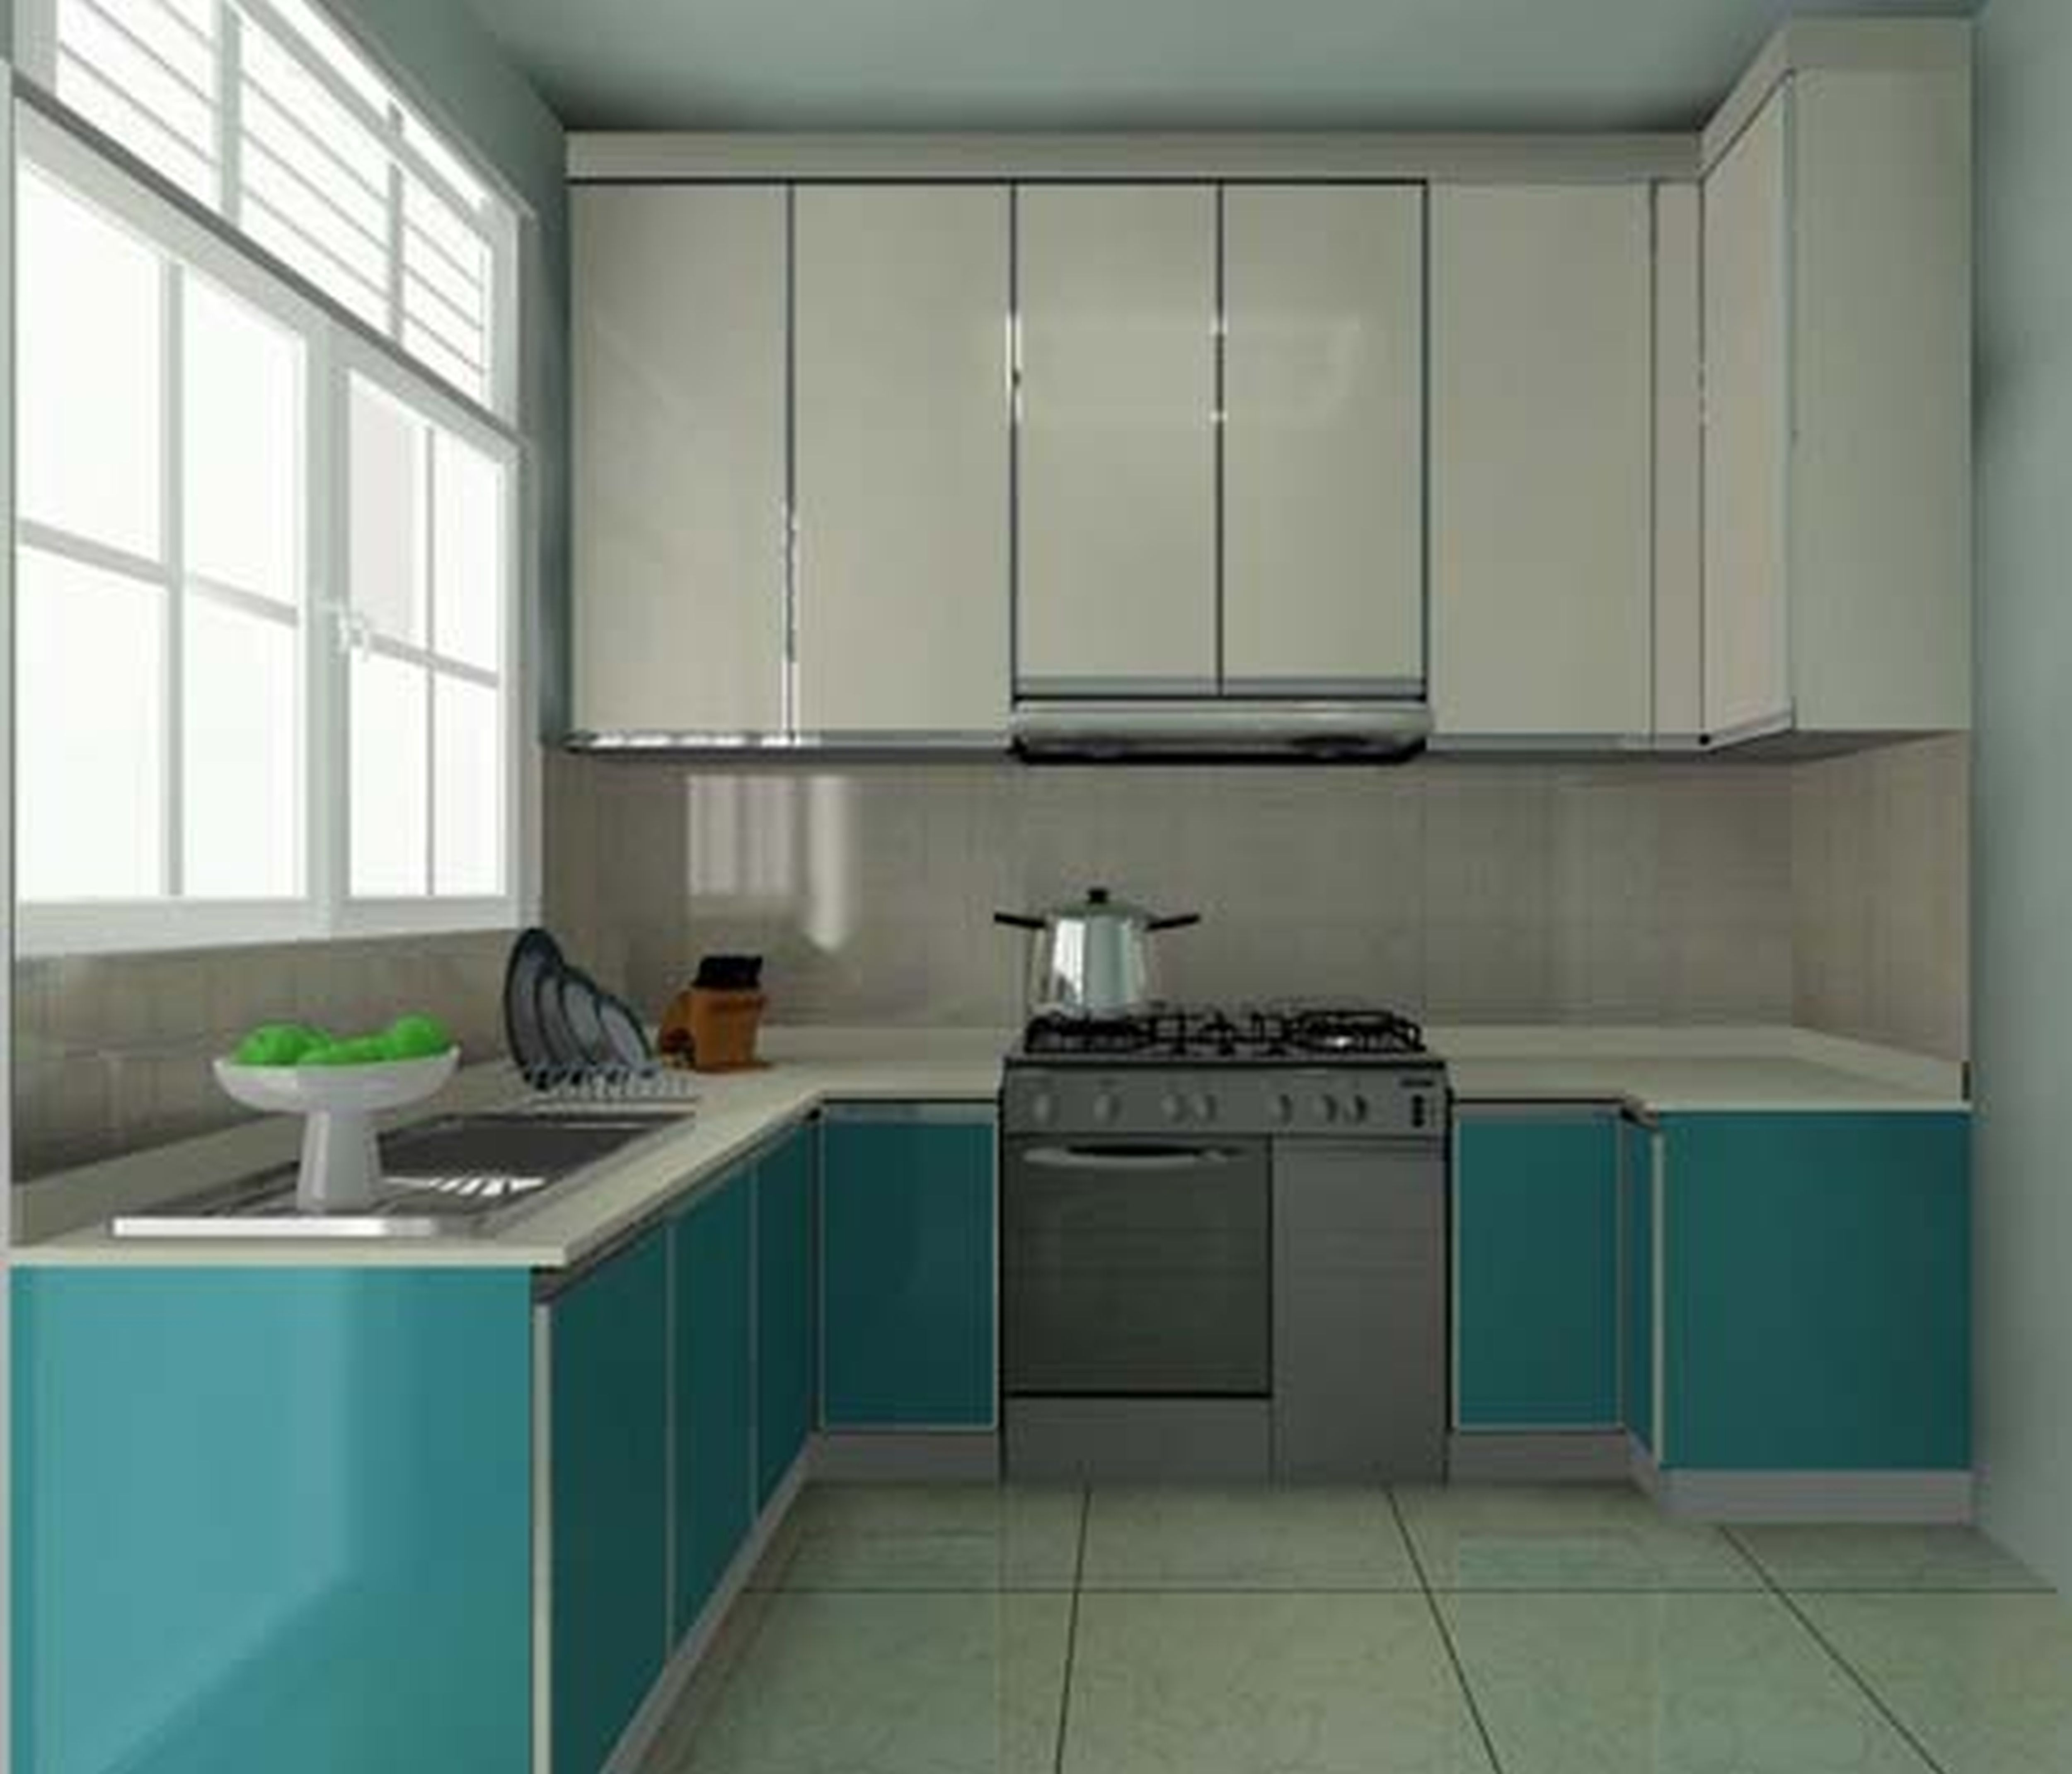 Kitchen Cabinets Small Spaces5000 X 4280